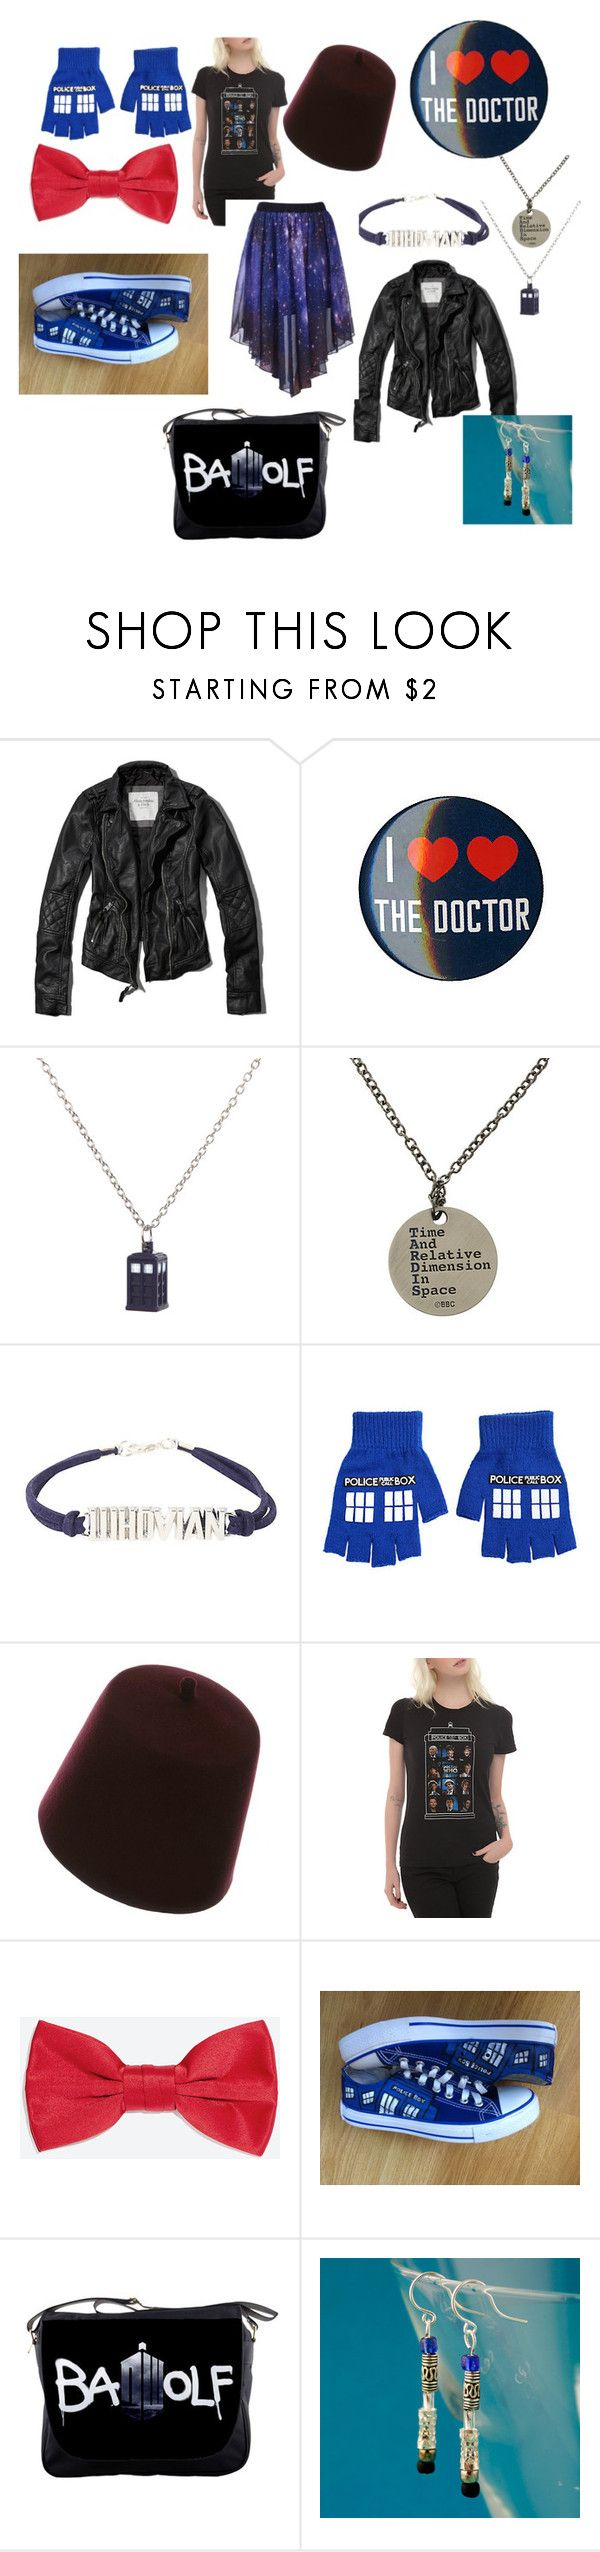 """""""doctor who fanatic outfit"""" by rainbow32539 ❤ liked on Polyvore featuring Abercrombie & Fitch, INDIE HAIR, Hot Topic, Zara and Converse"""